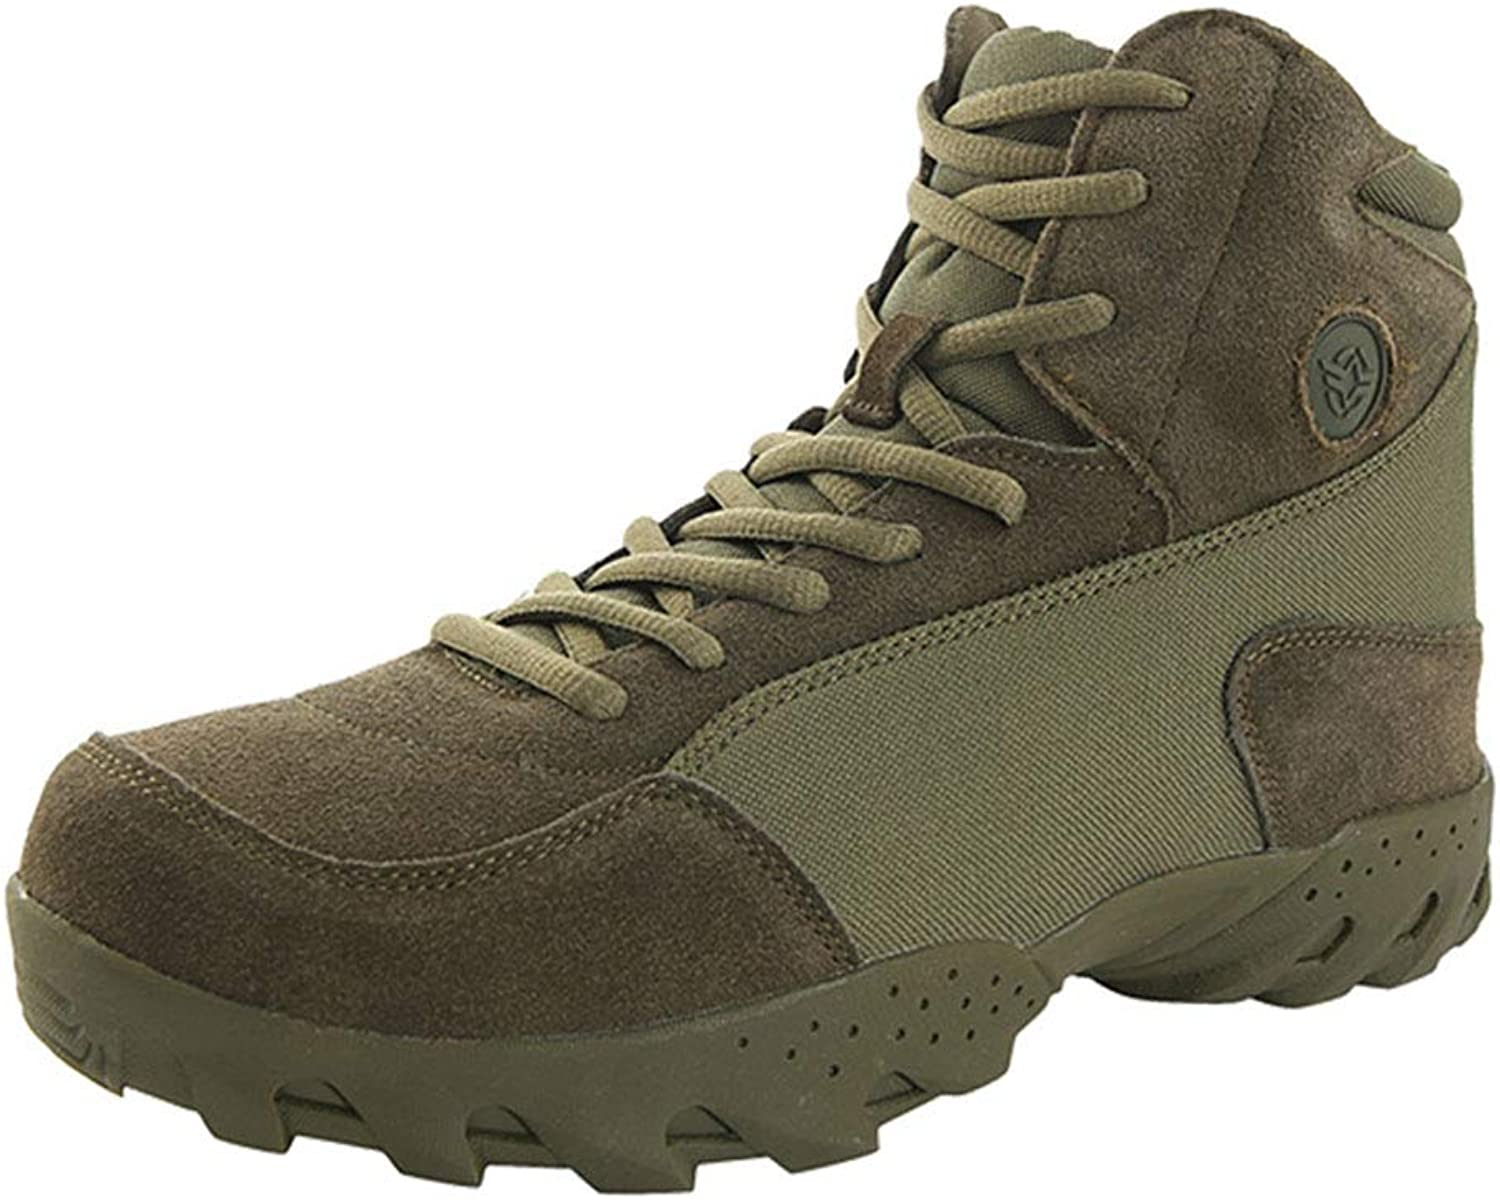 Tlgf Men's High Rise Walking Boots,Hiking shoes,Northwest Territory,Breathable, Soft, Comfortable,Green